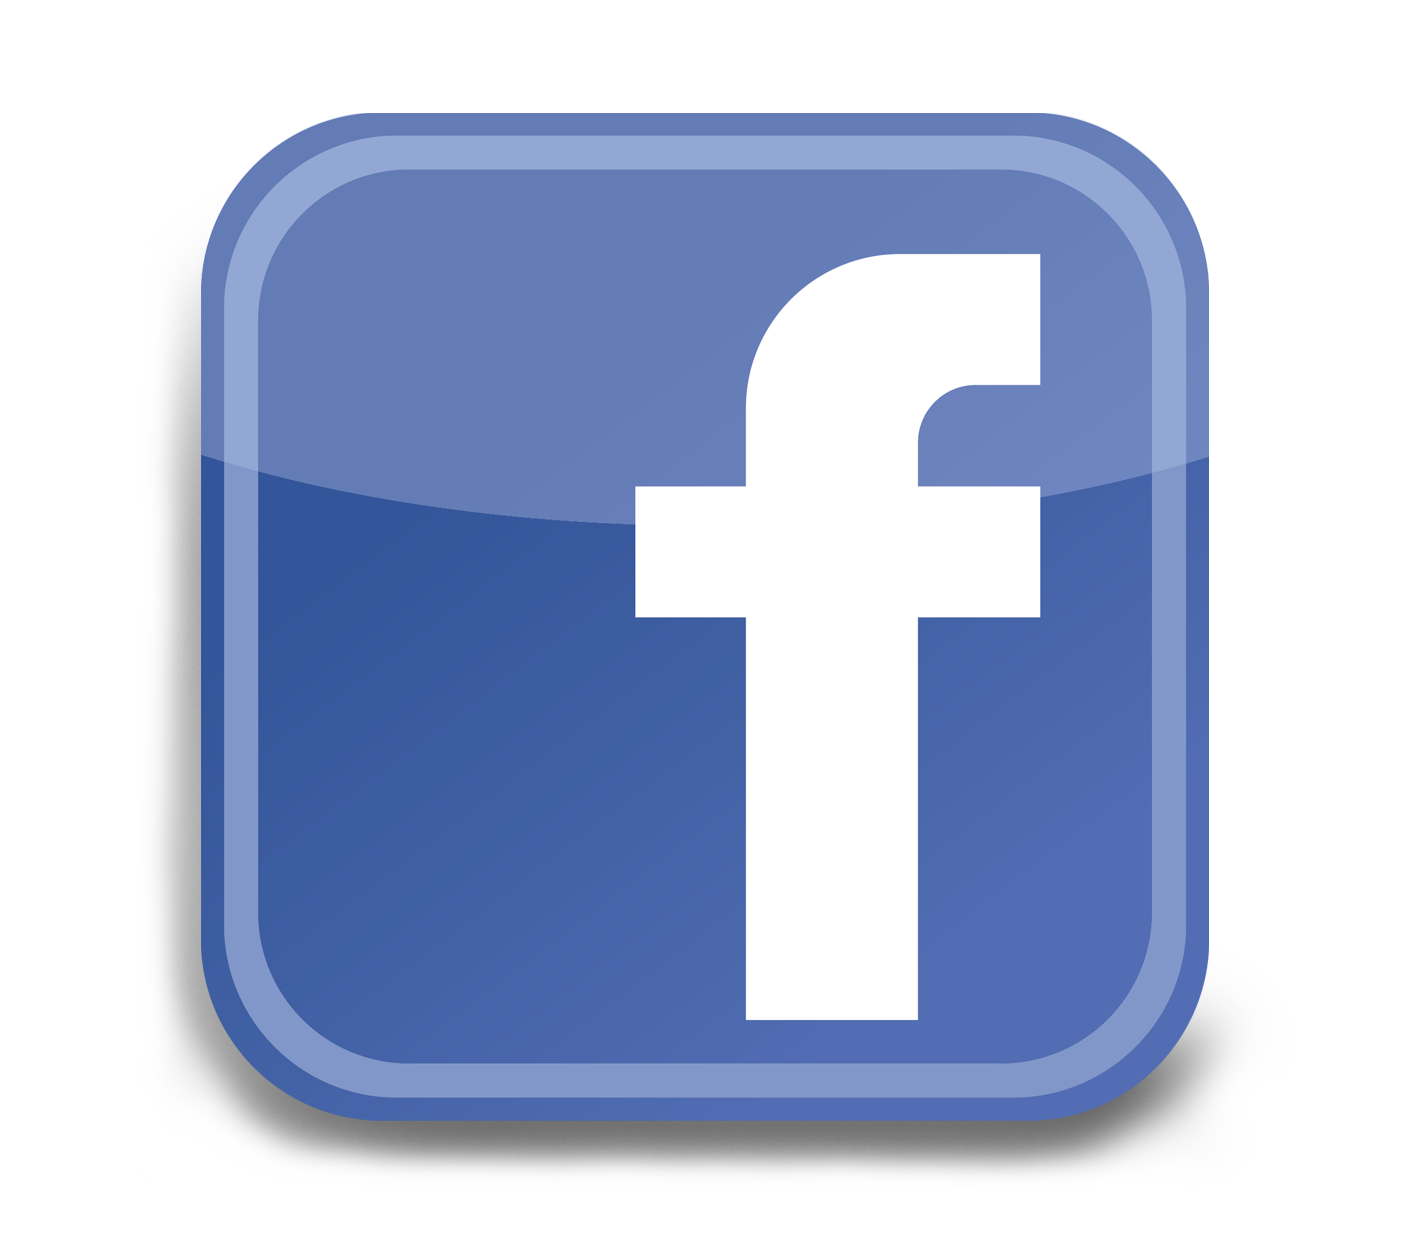 facebook clipart template